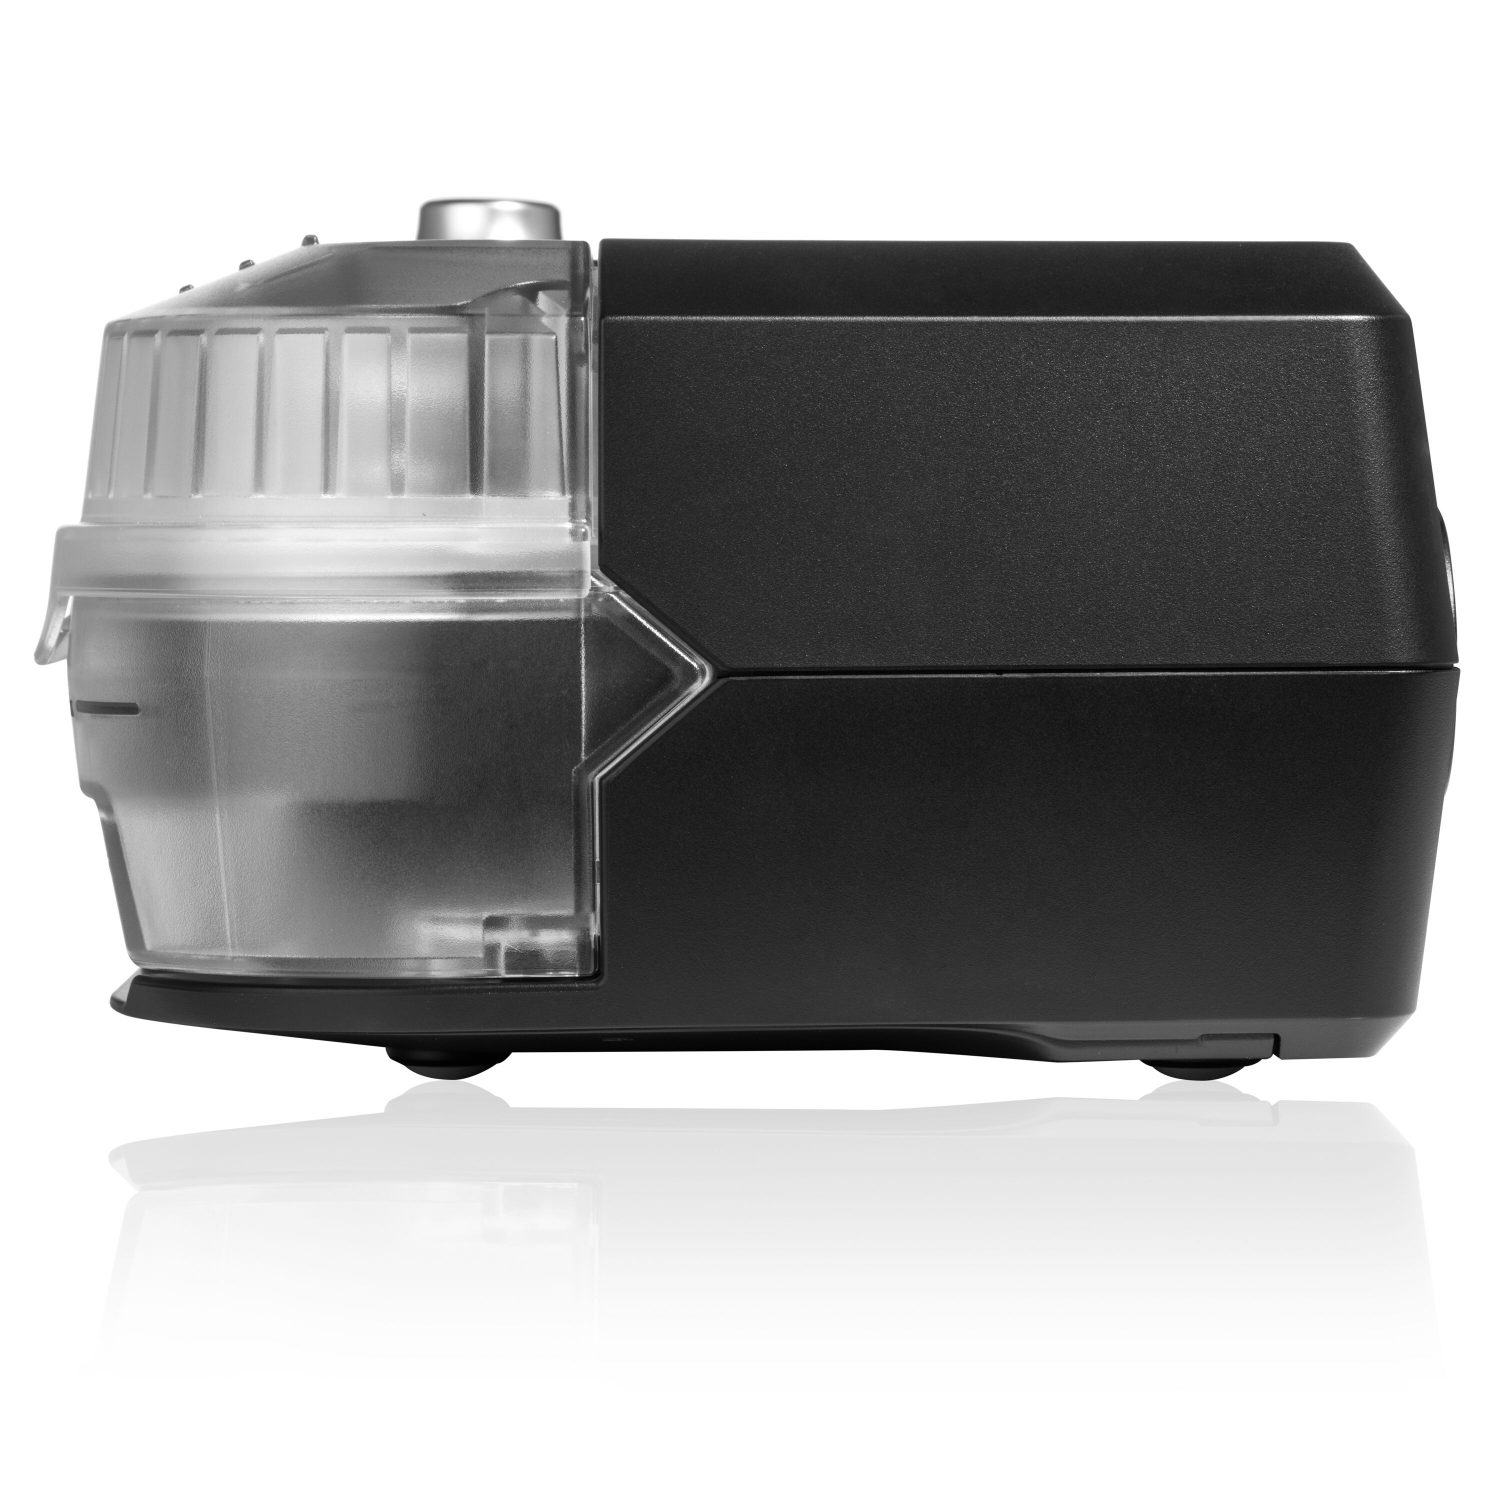 3b Luna Ii Cpap With Integrated Heated Humidifier